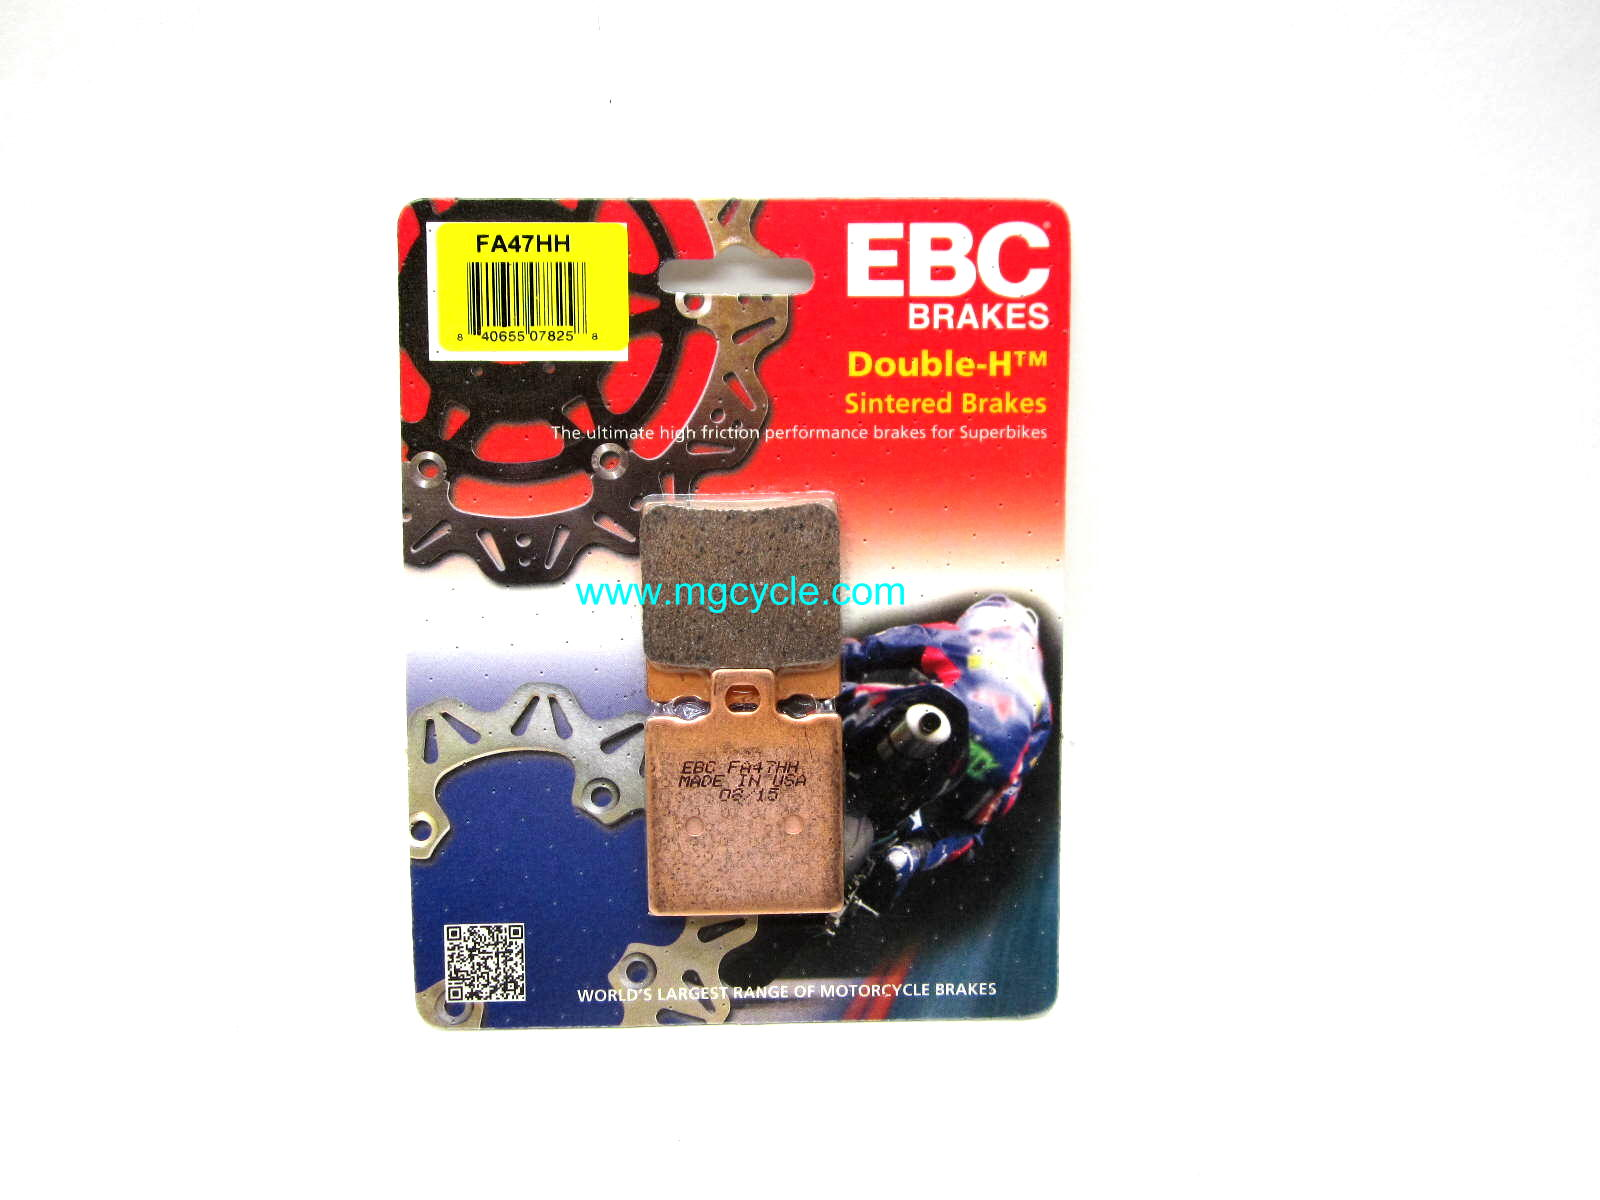 EBC sintered brake pads, F05 small twins, Spine frame rear